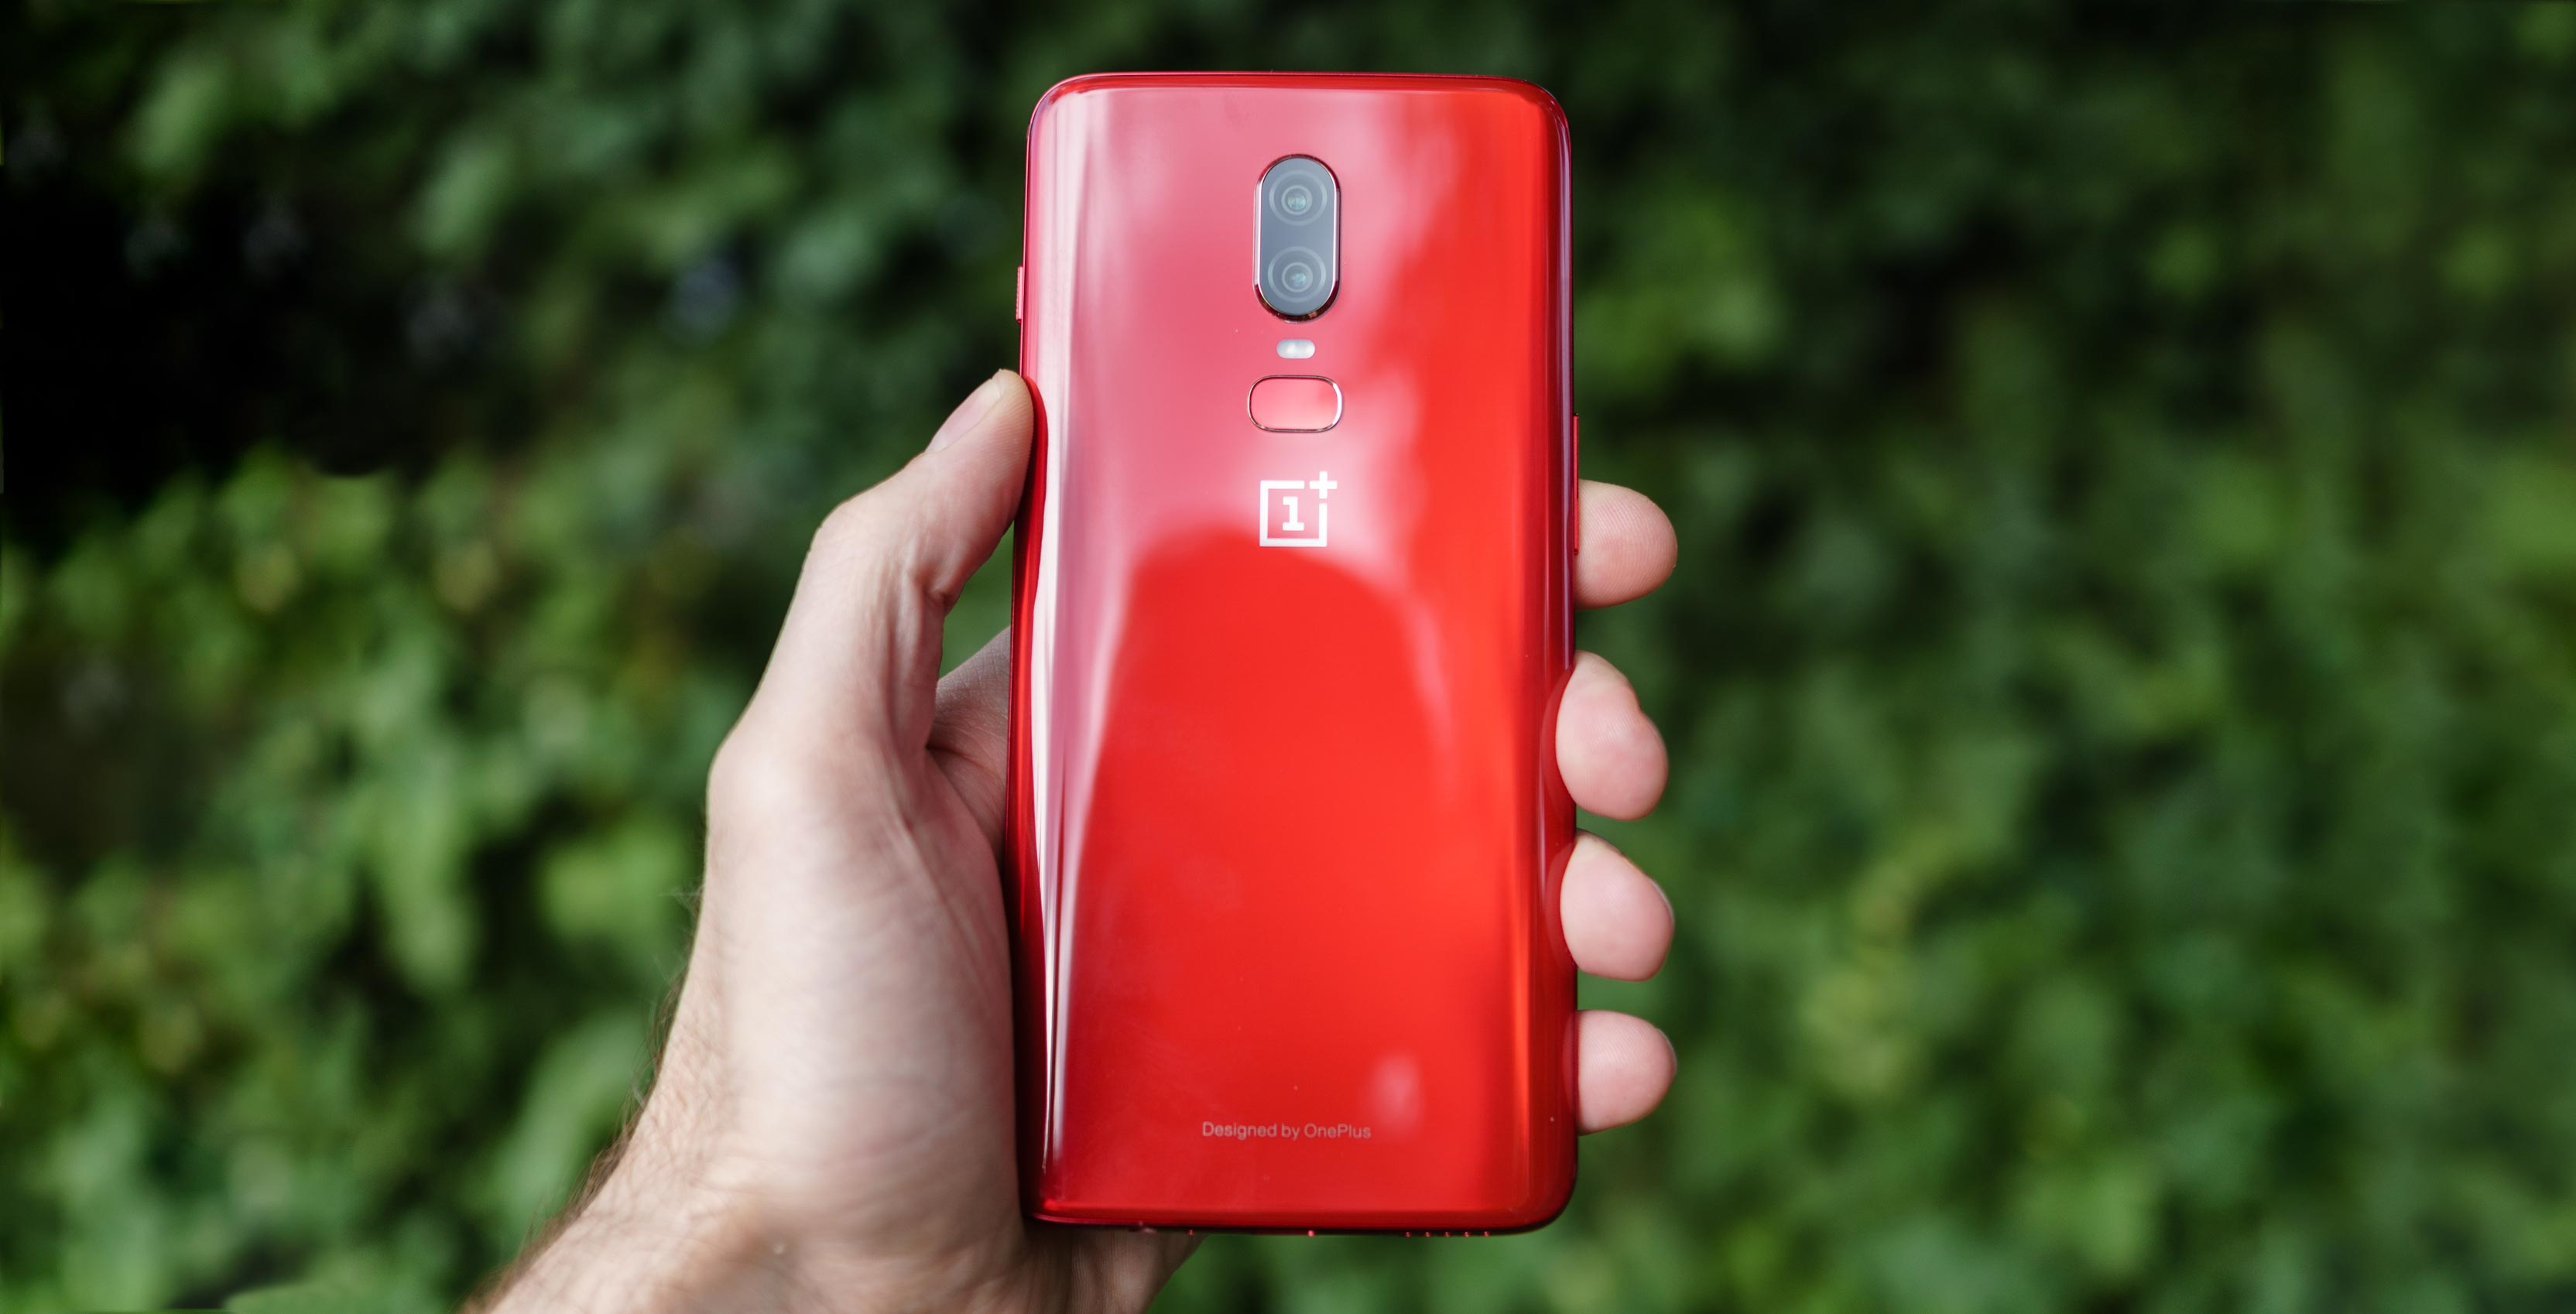 OnePlus 6T event rescheduled for October 29